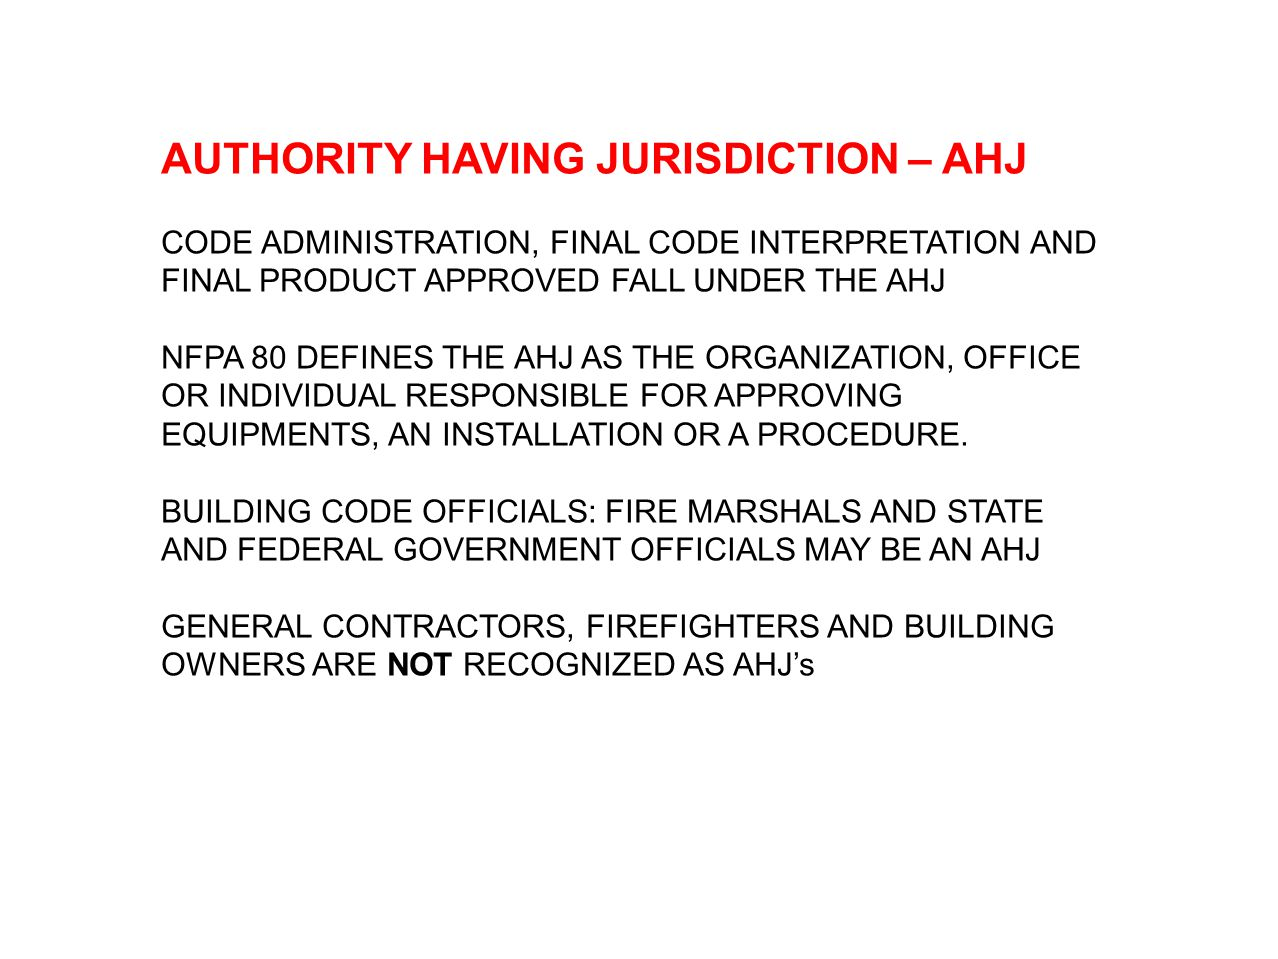 NFPA 80 DEFINES A FIRE SHUTTER AS A LABELED DOOR ASSEMBLE USED FOR THE PROTECTION OF A WINDOW IN AN EXTERIOR WALL.